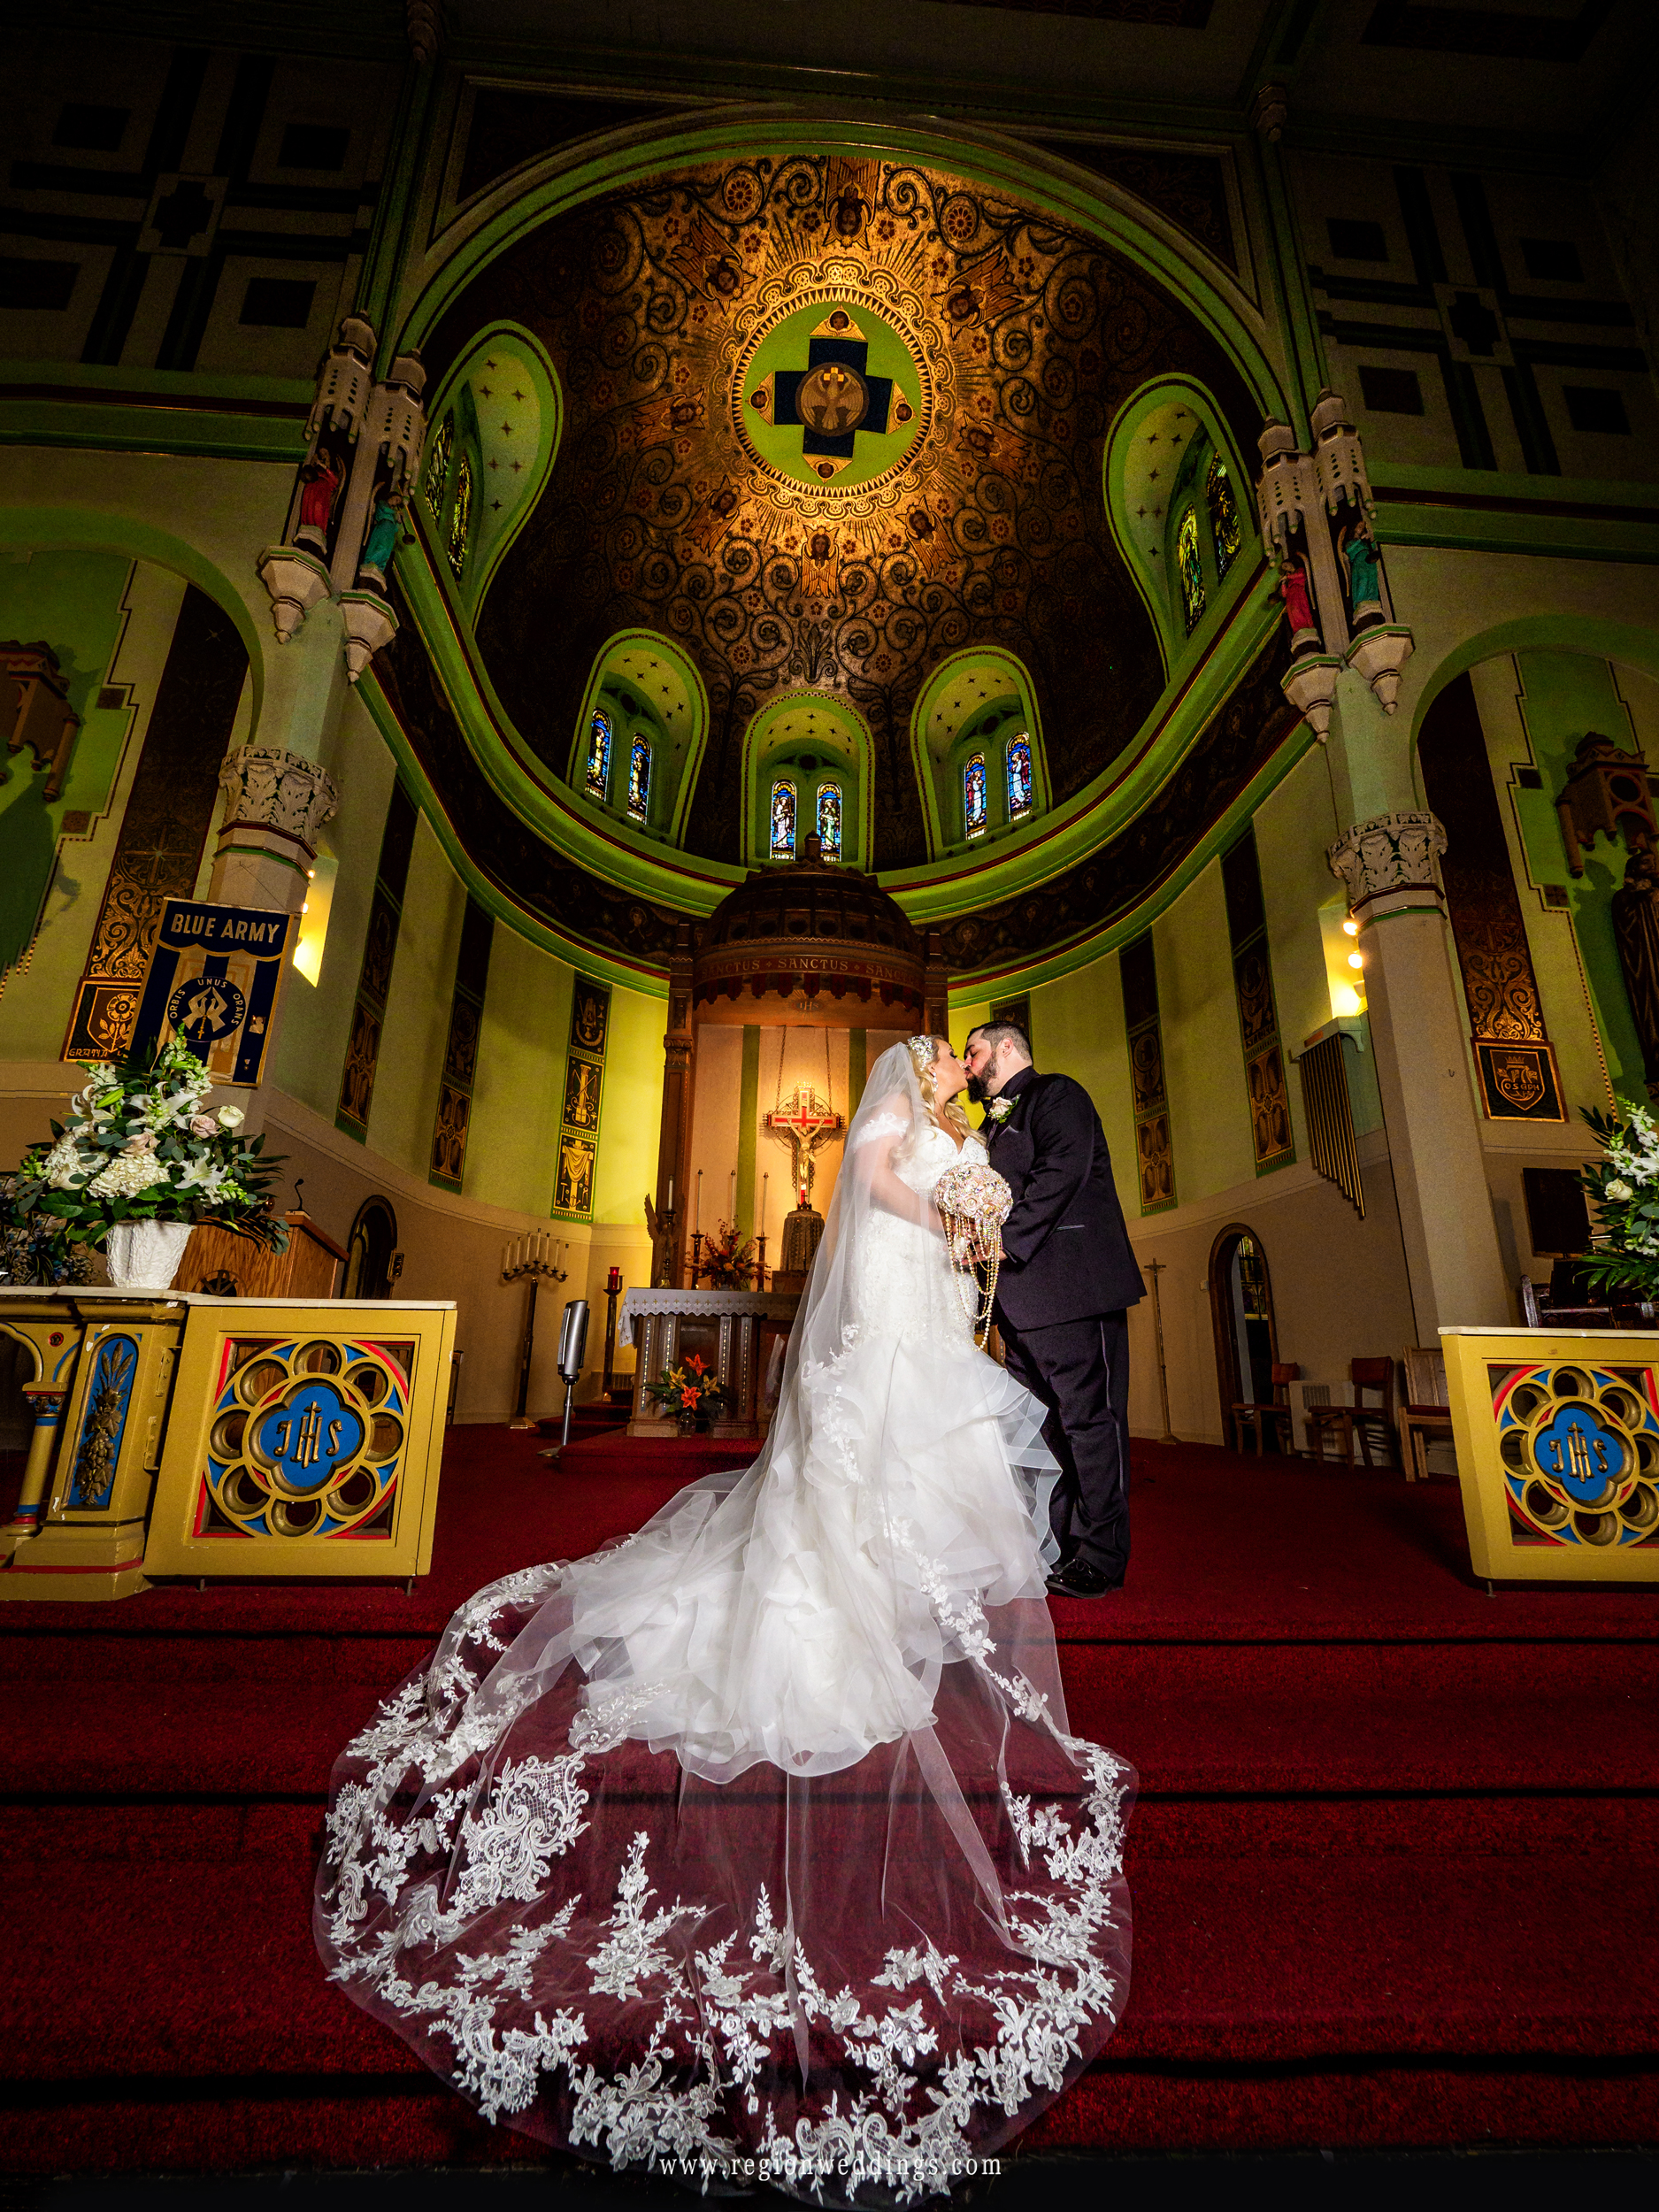 Bride and groom kiss on the altar at St. Stanislaus Church in Michigan City, Indiana.